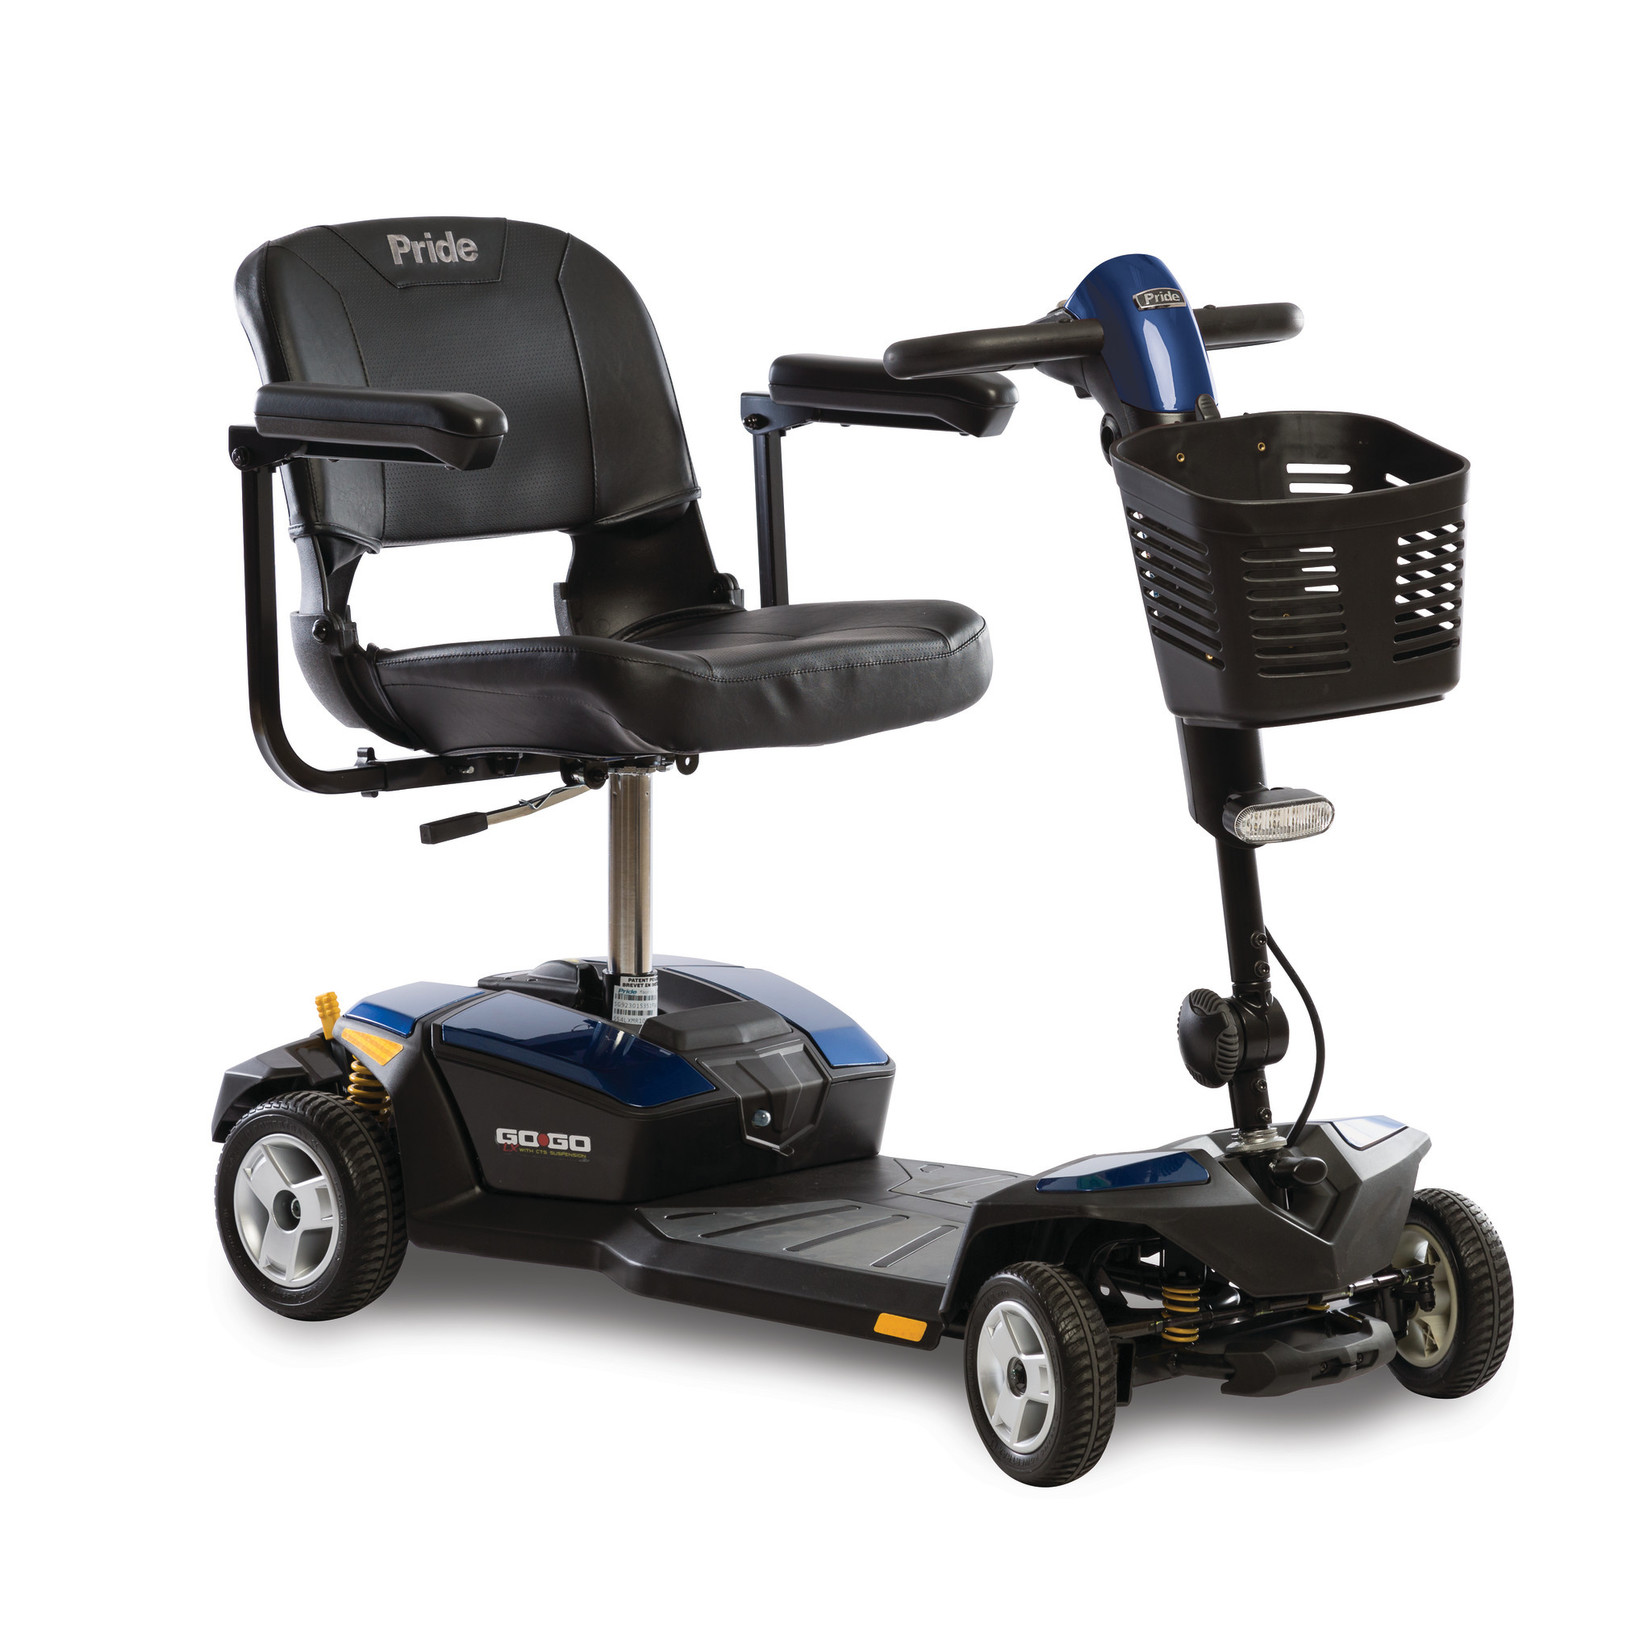 Pride Go-Go LX with CTS Suspension 4-Wheel Scooters 12AH Battery